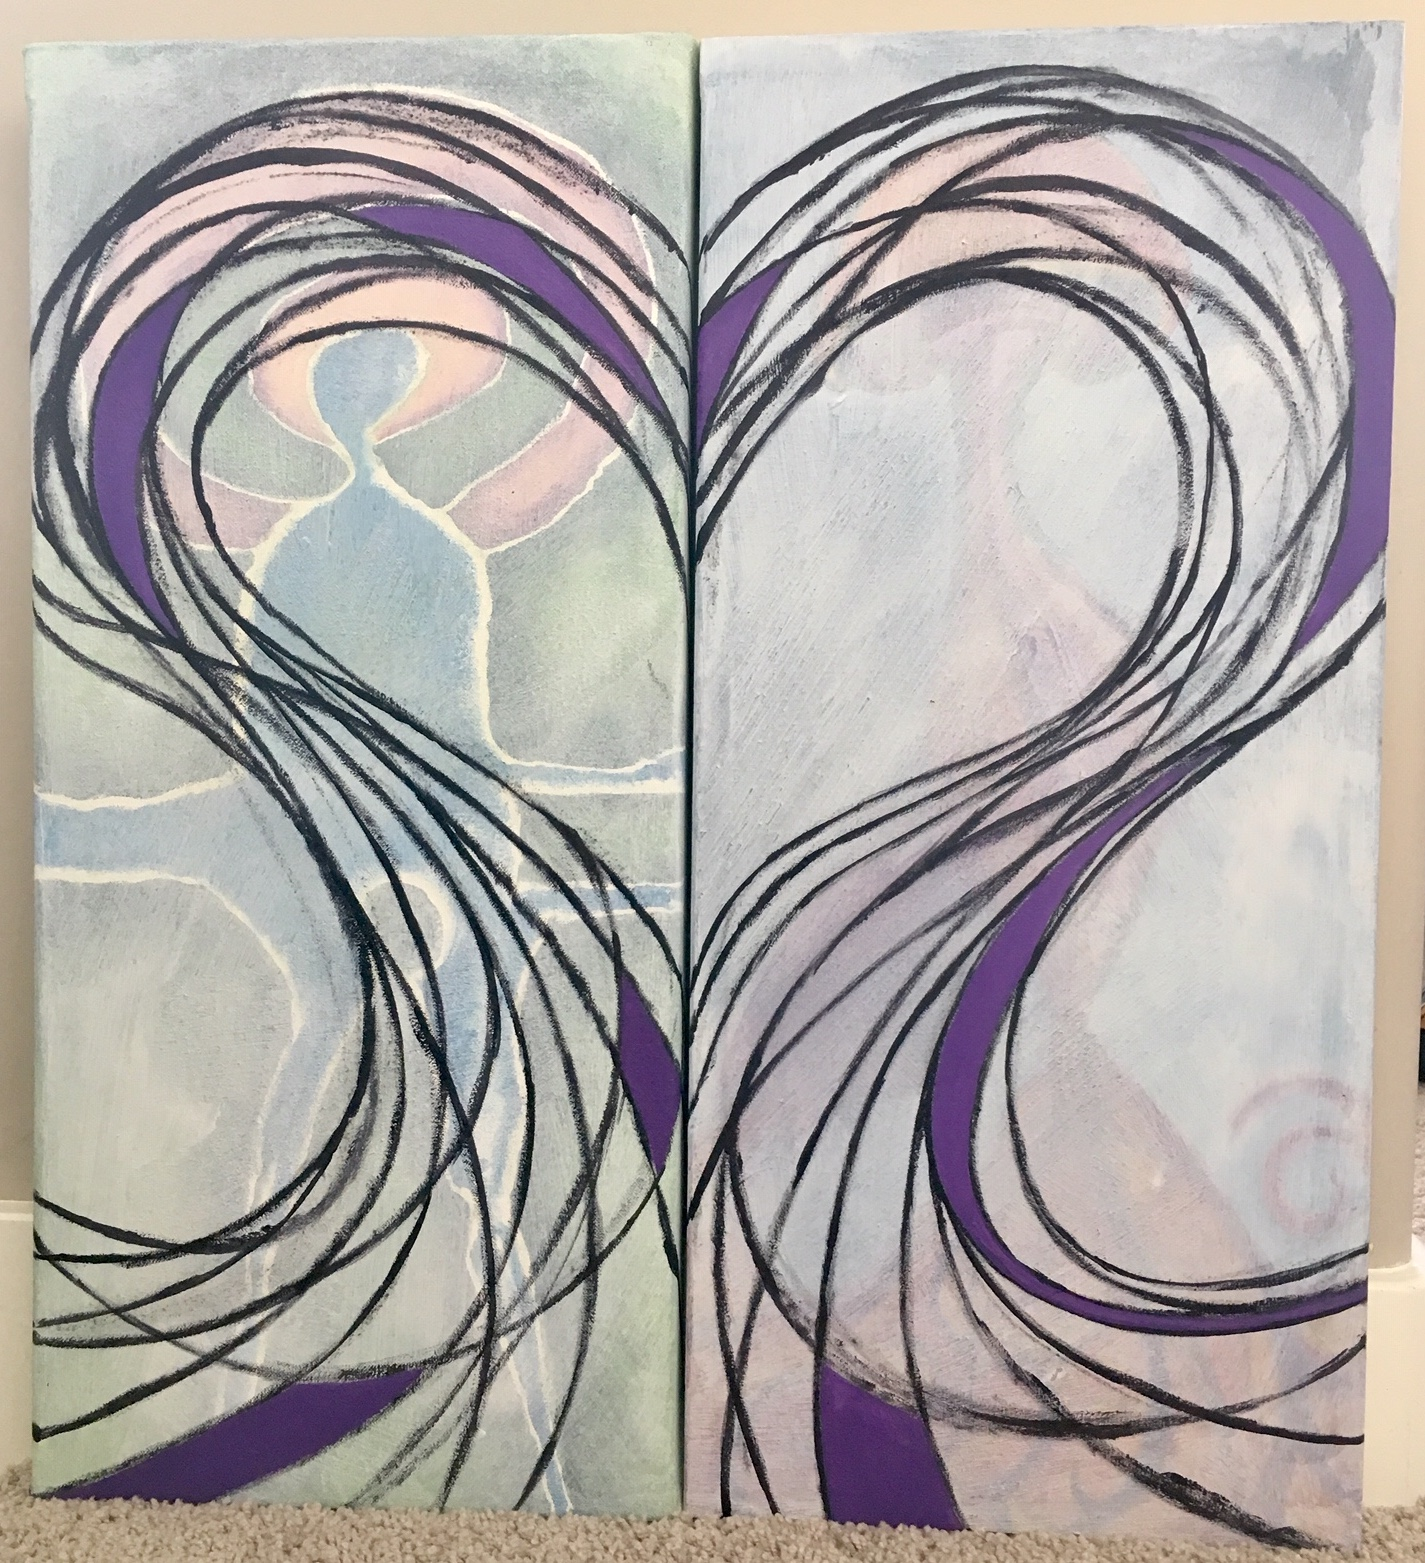 The upside of reflection - tendrils of rainbow hearts